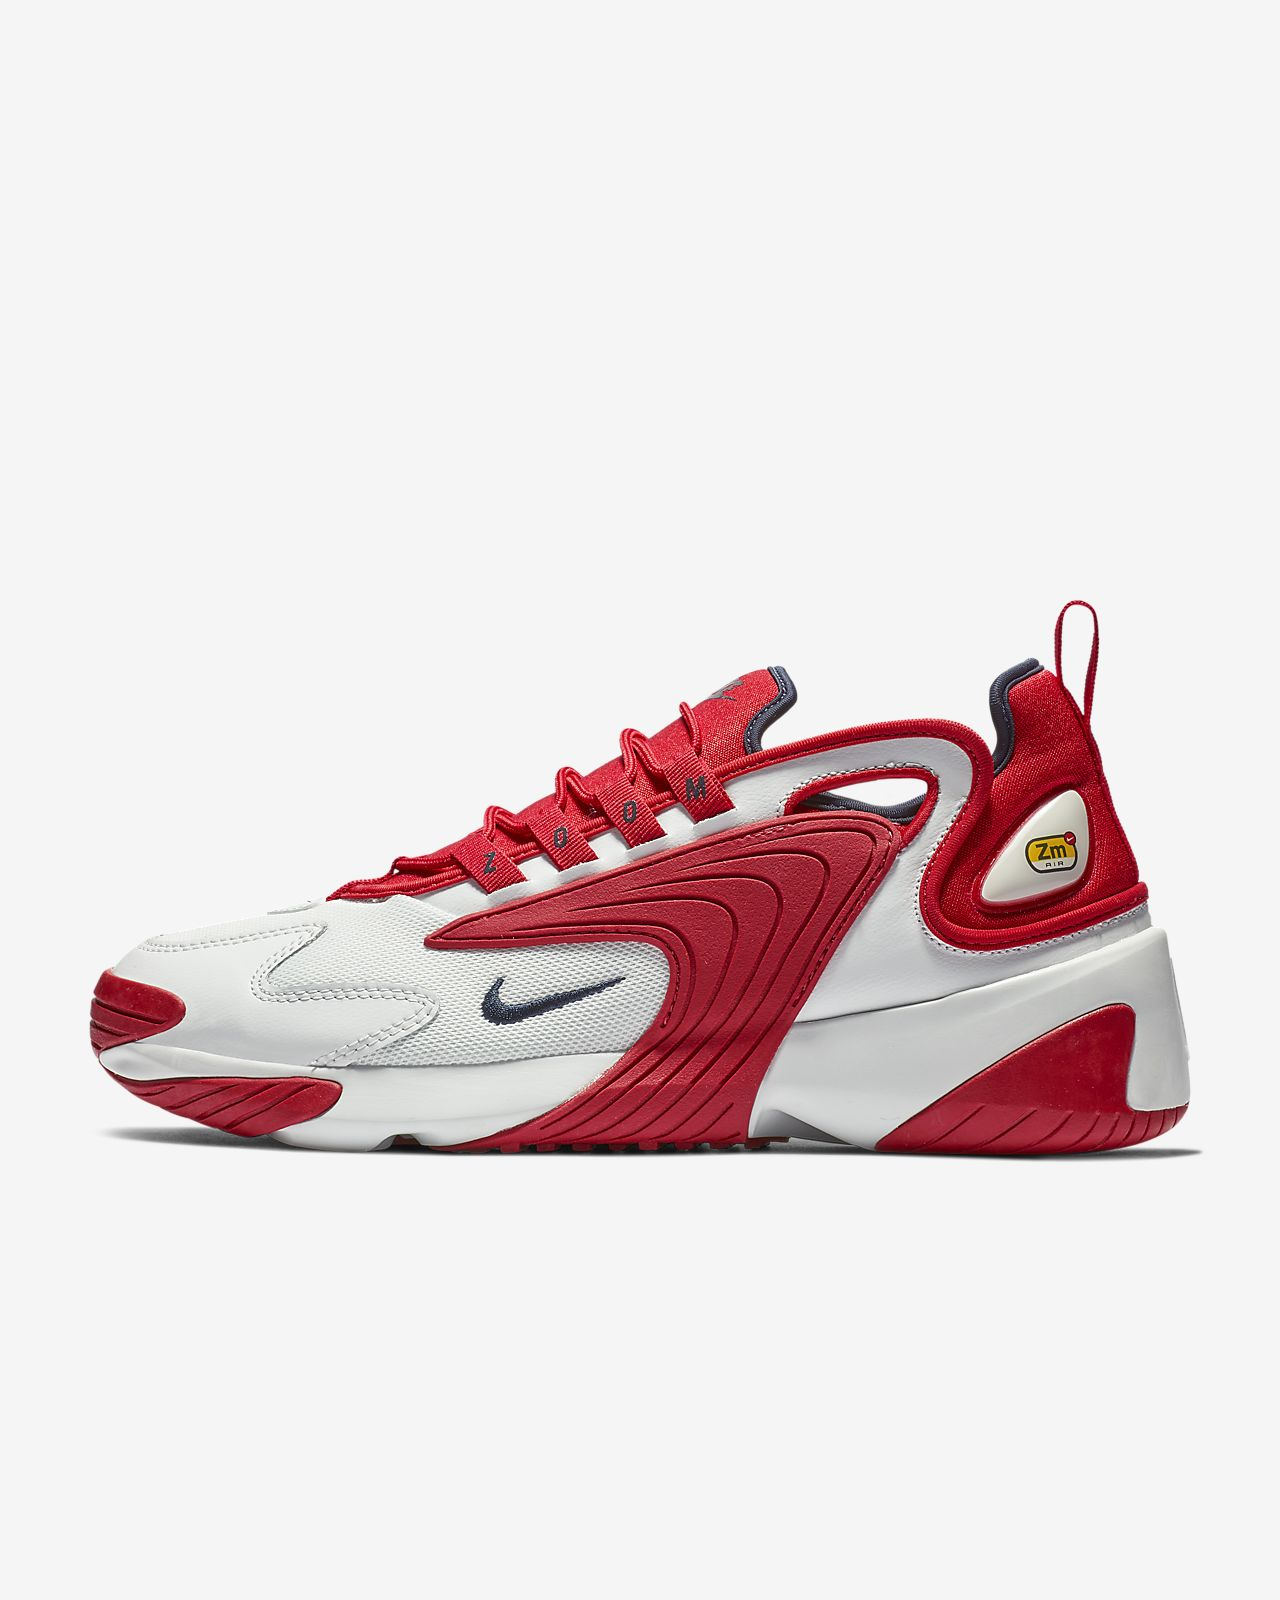 cheaper 9404b c88d0 ... Chaussure Nike Zoom 2K pour Homme